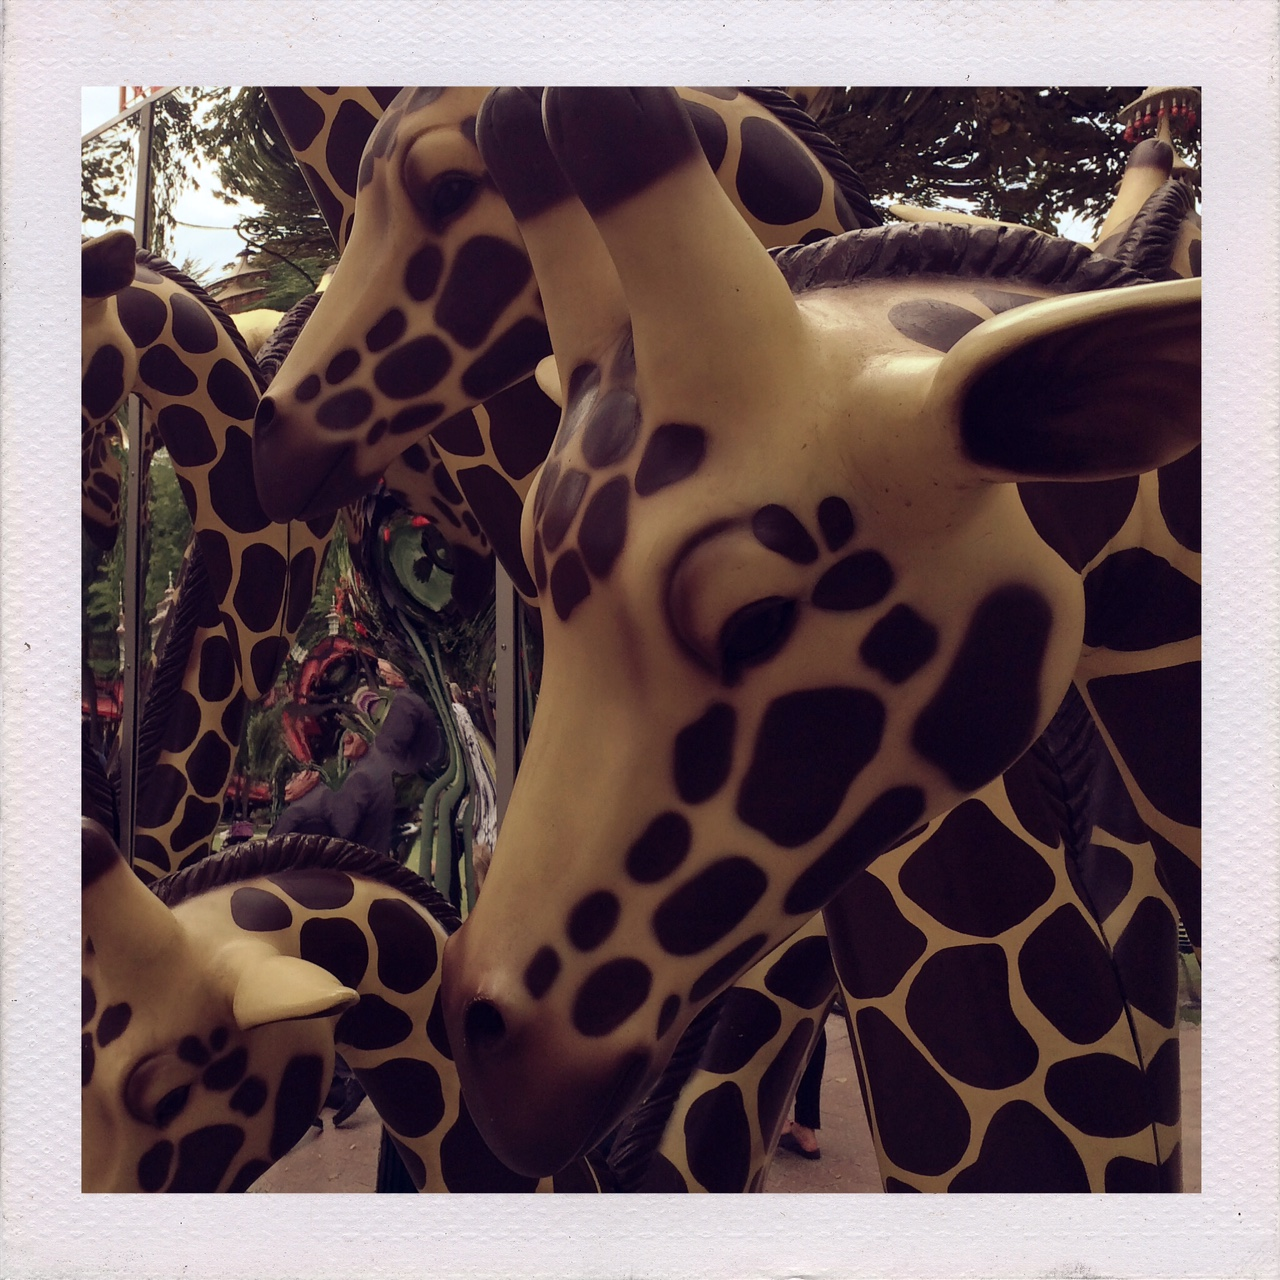 Giraffes at Tivoli